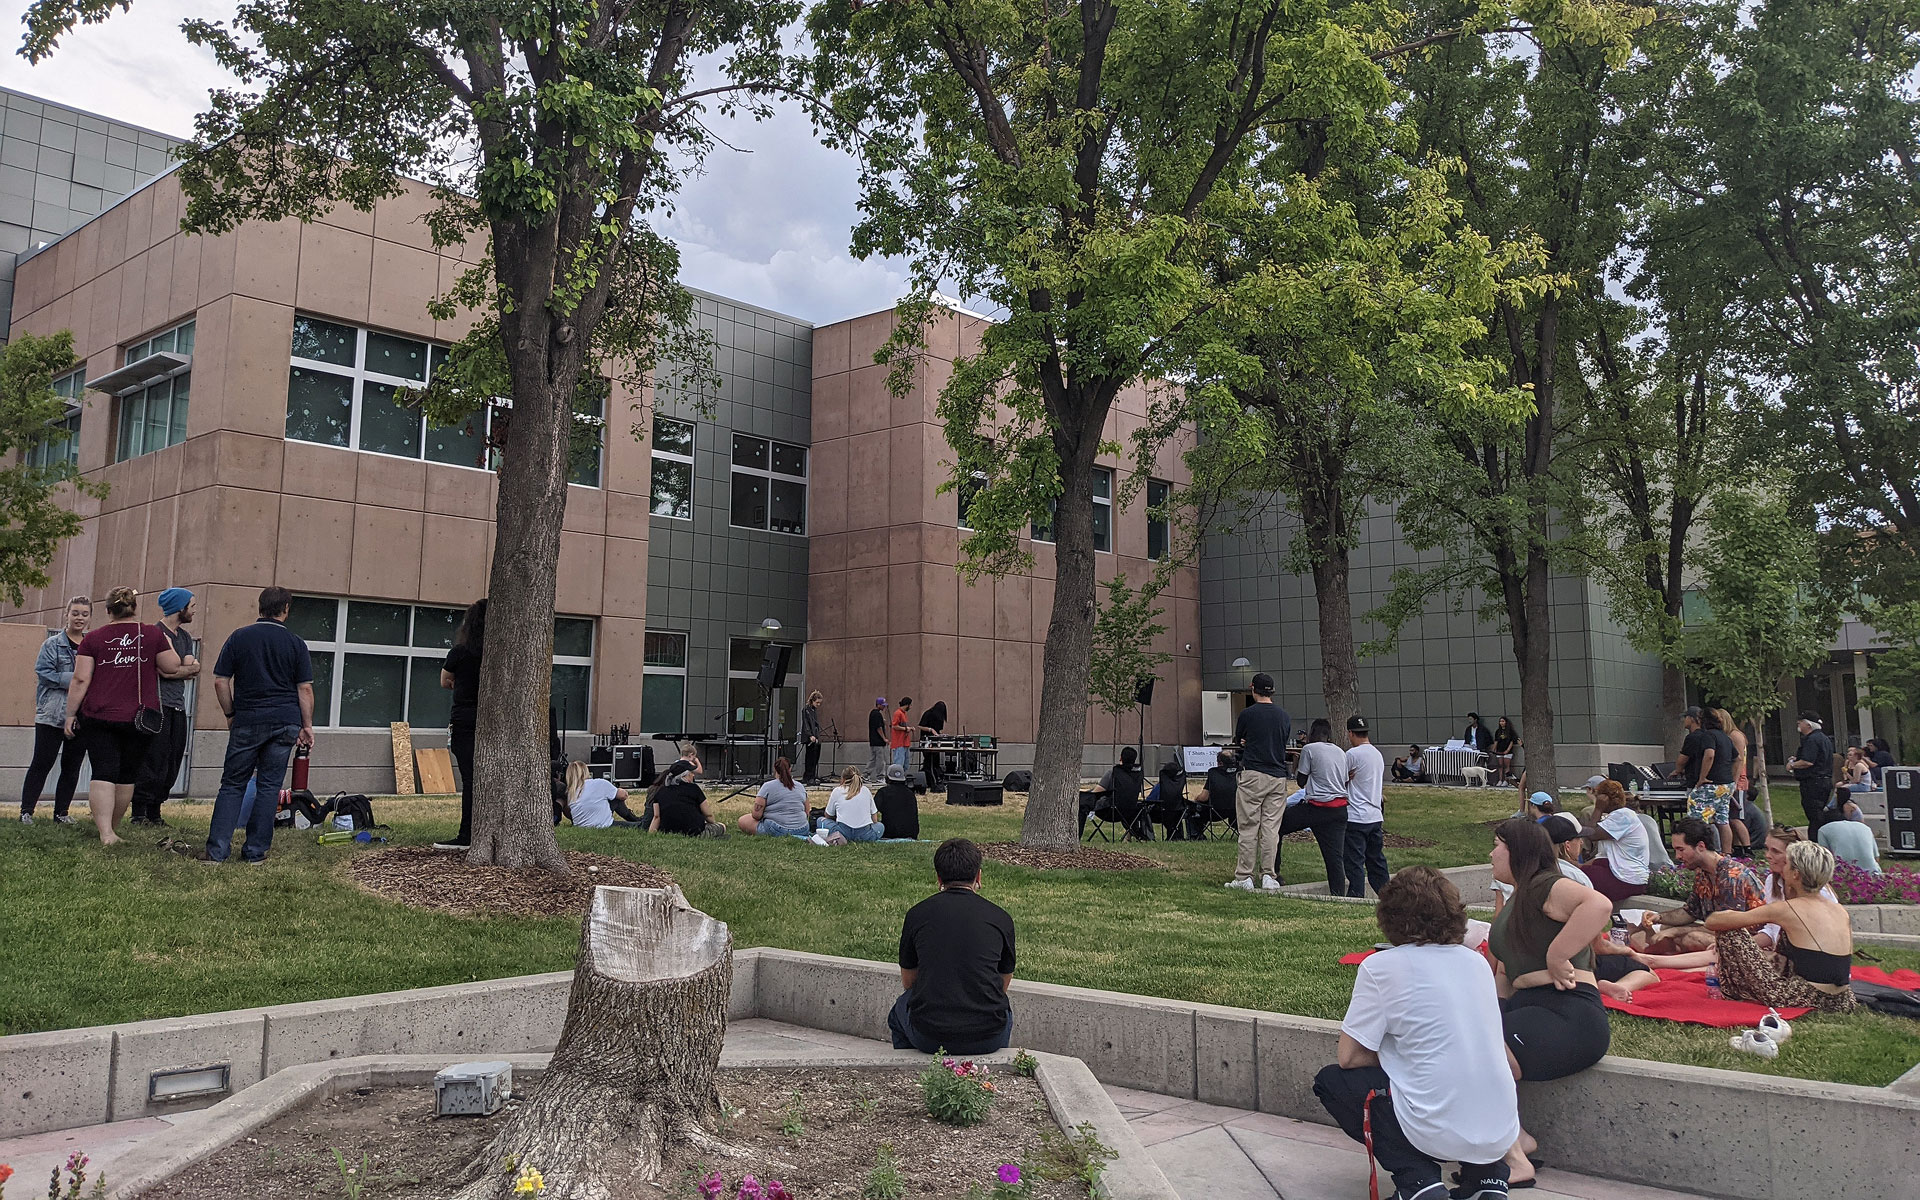 Dozens of people sit outside listening to live music